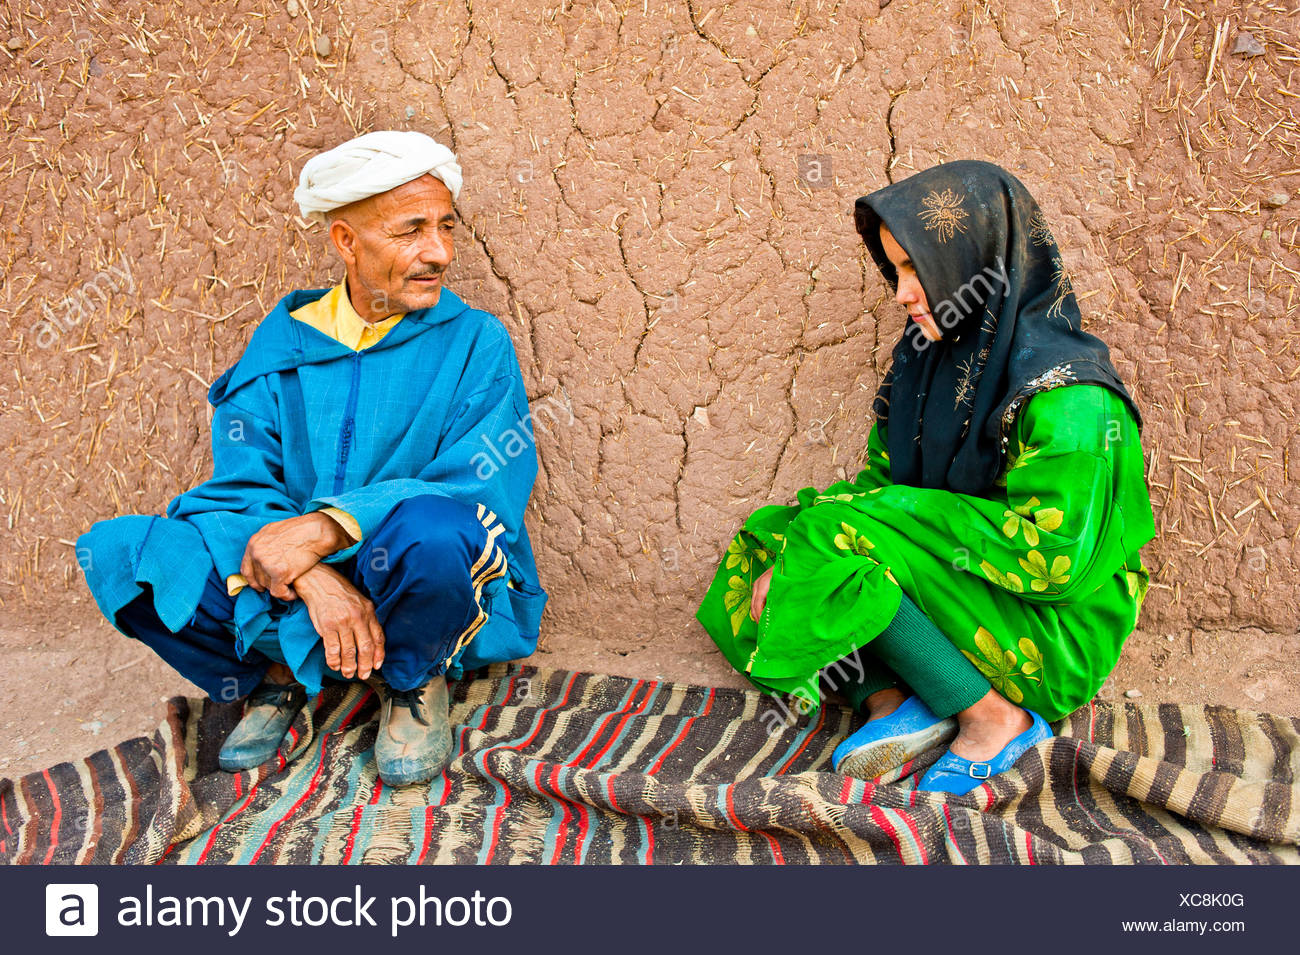 Elderly man and a young girl, Berber people, squatting on a carpet or rug in front of a mud brick house talking Stock Photo